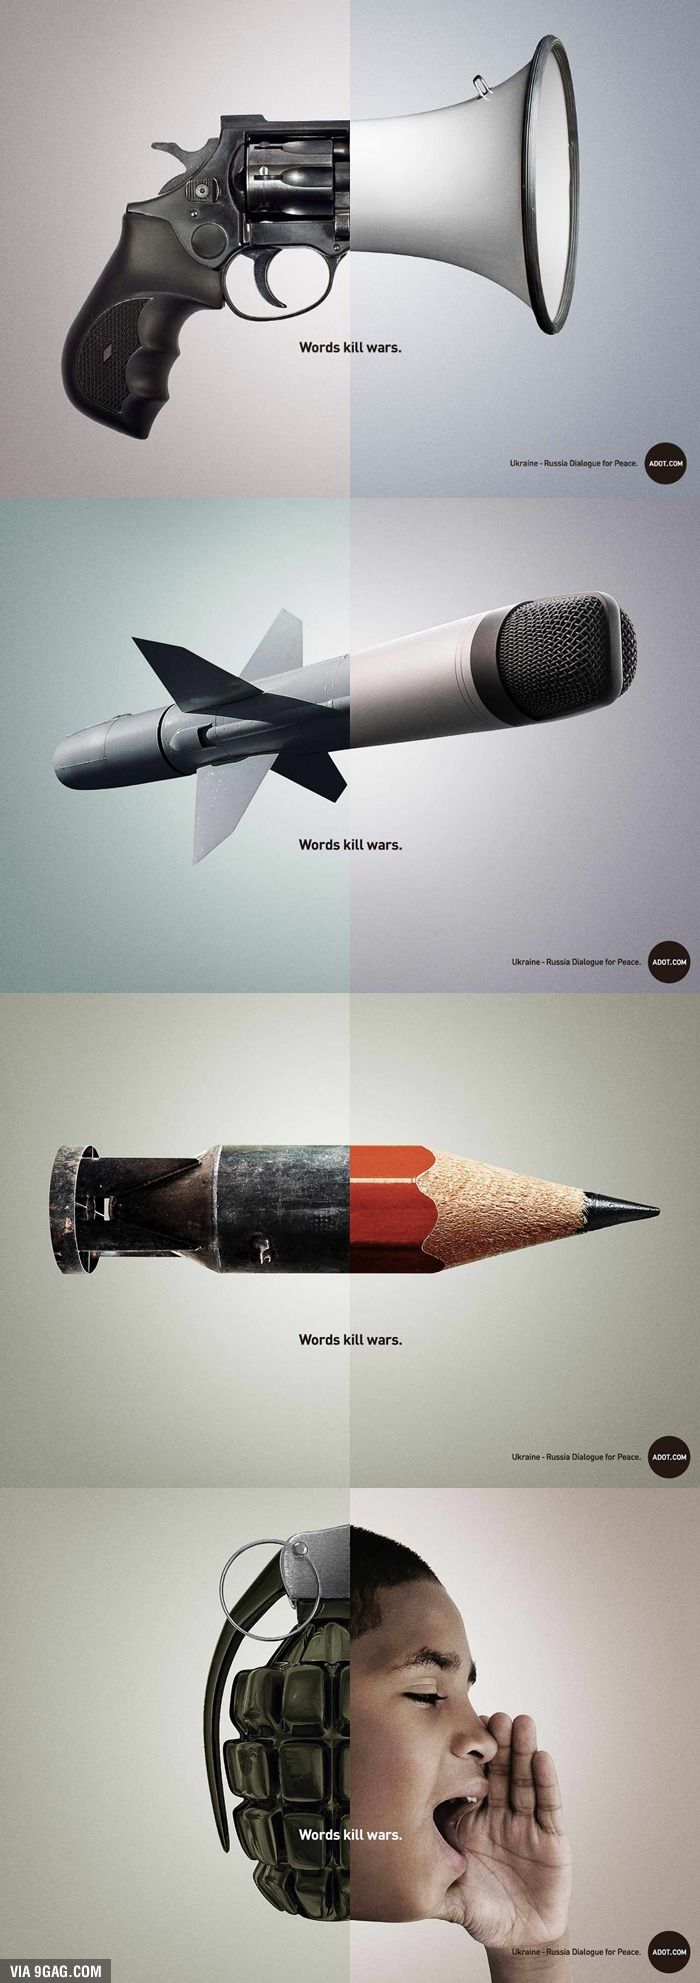 This ad promotes #talking about issues instead of resorting to #violence. It transforms weapons into tools that are used to speak.